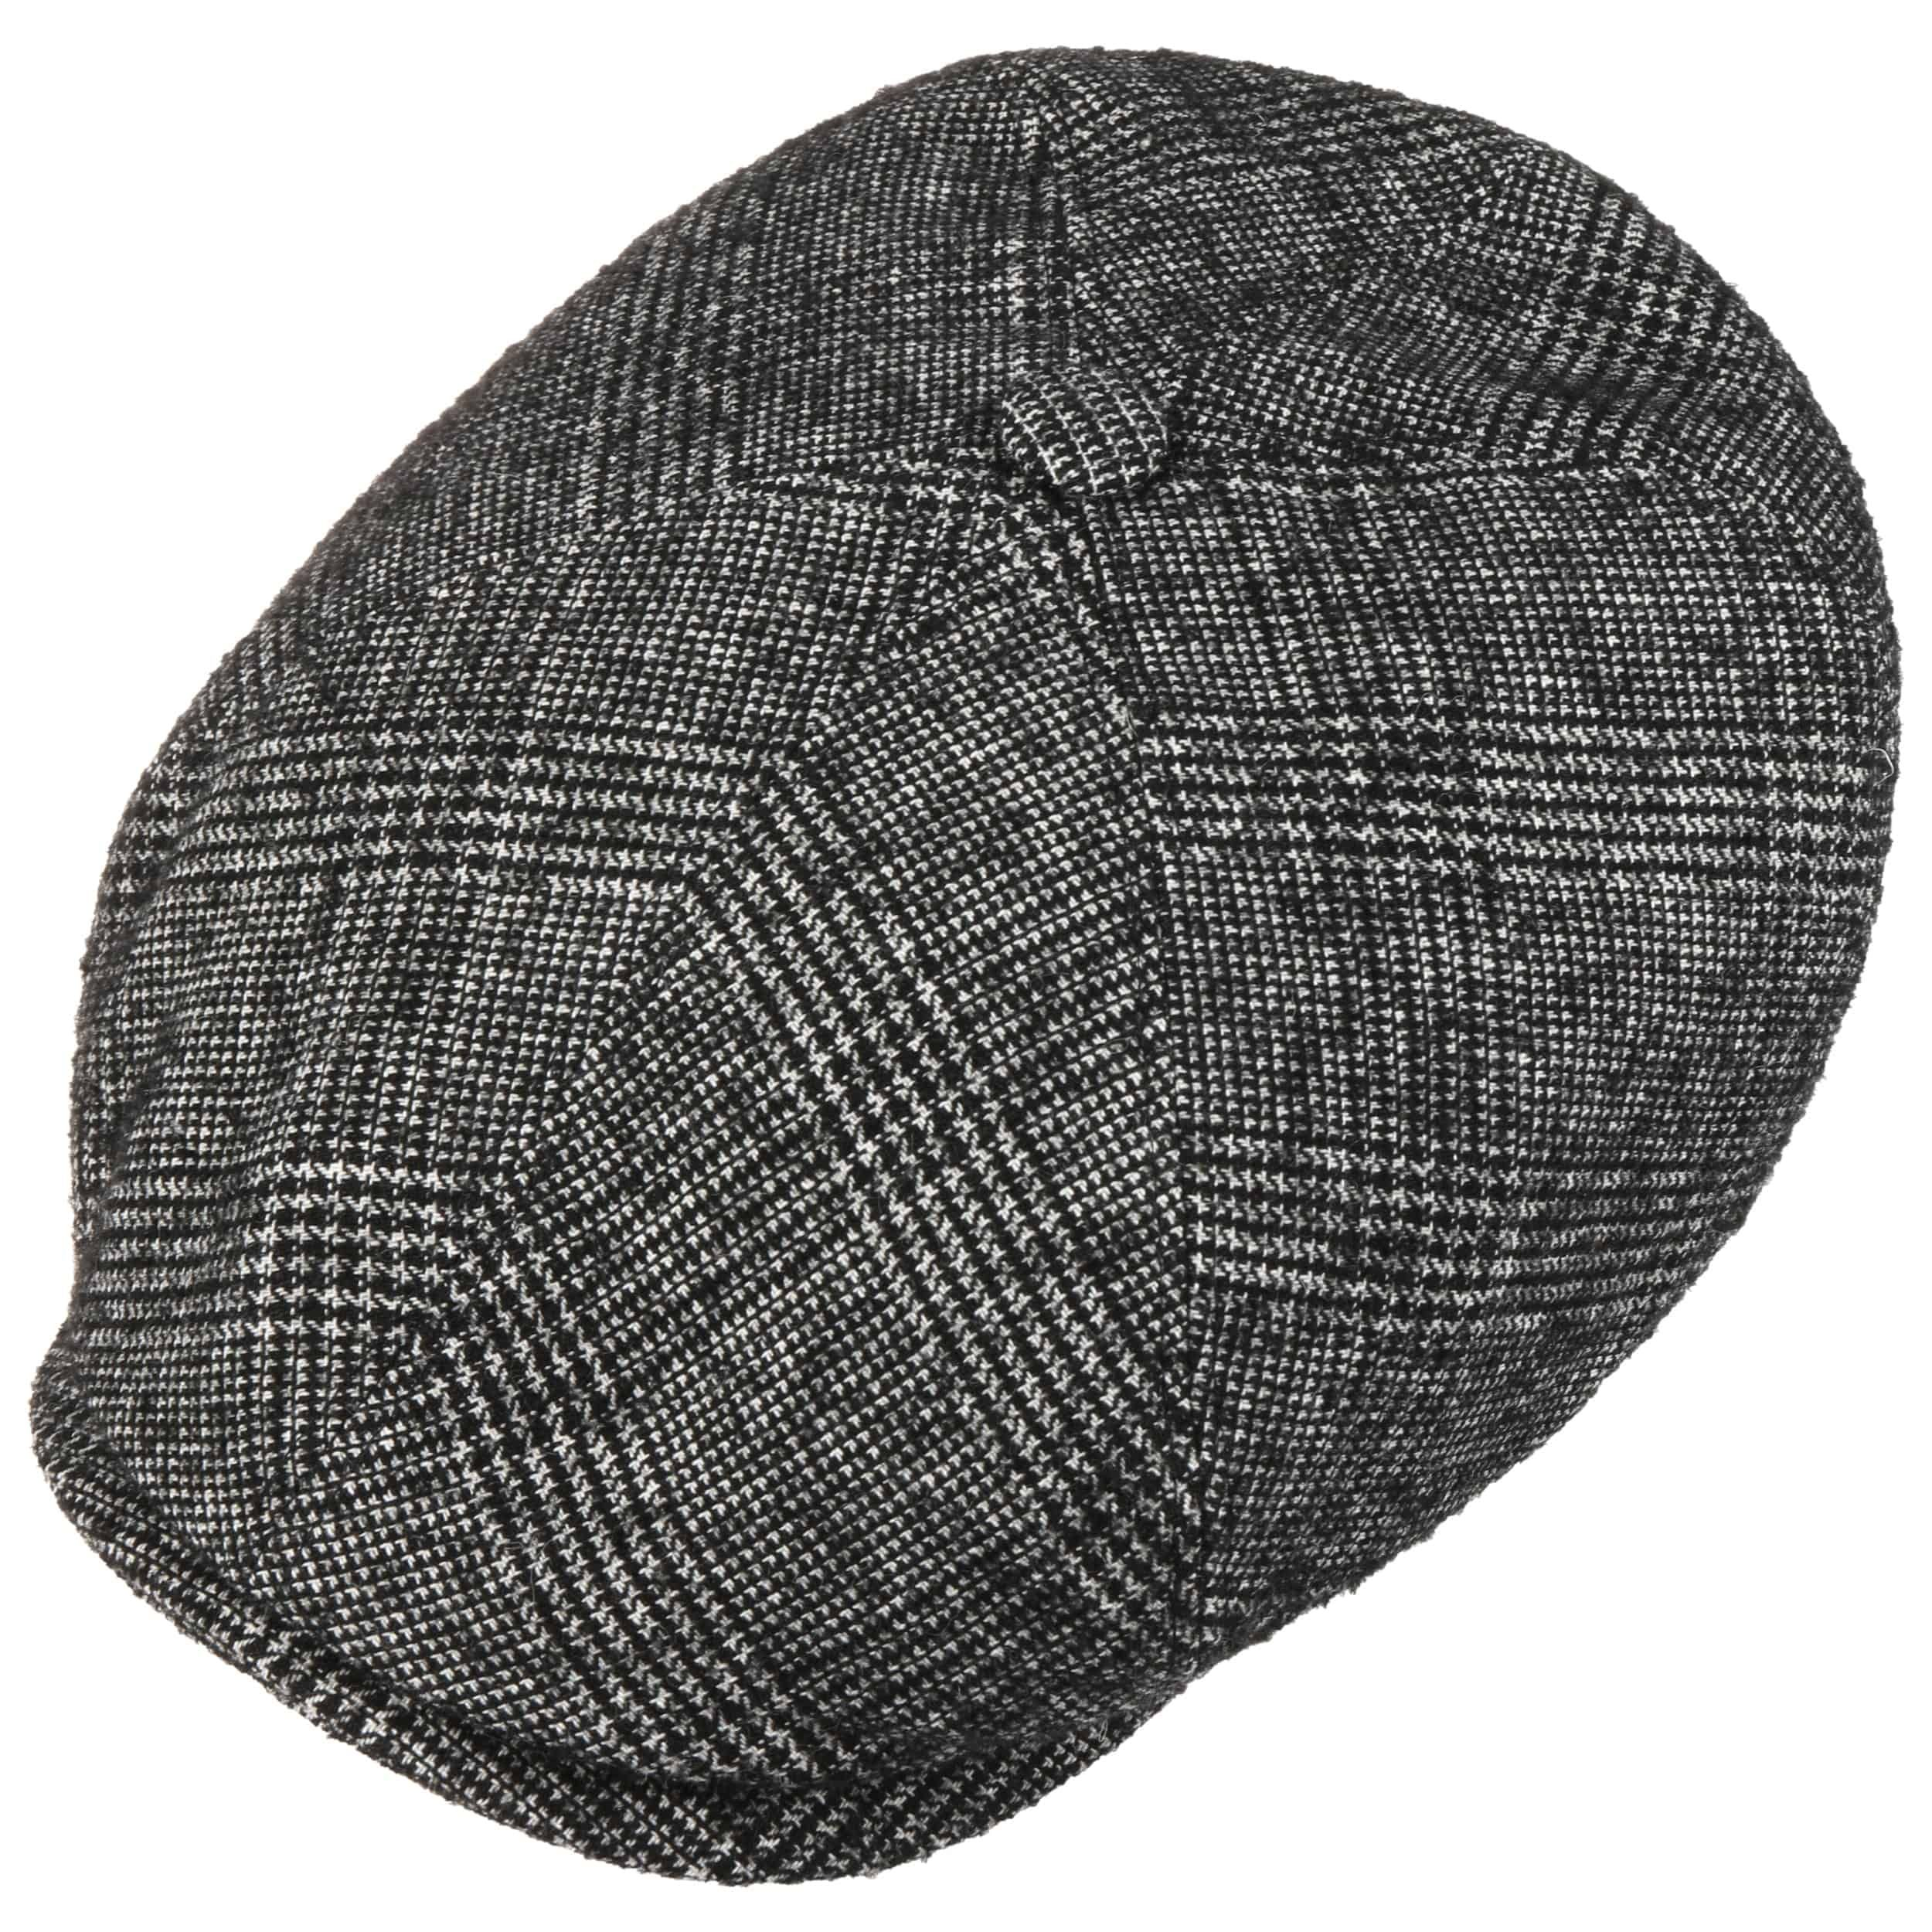 Brooklin Bouclé Flat Cap black-white